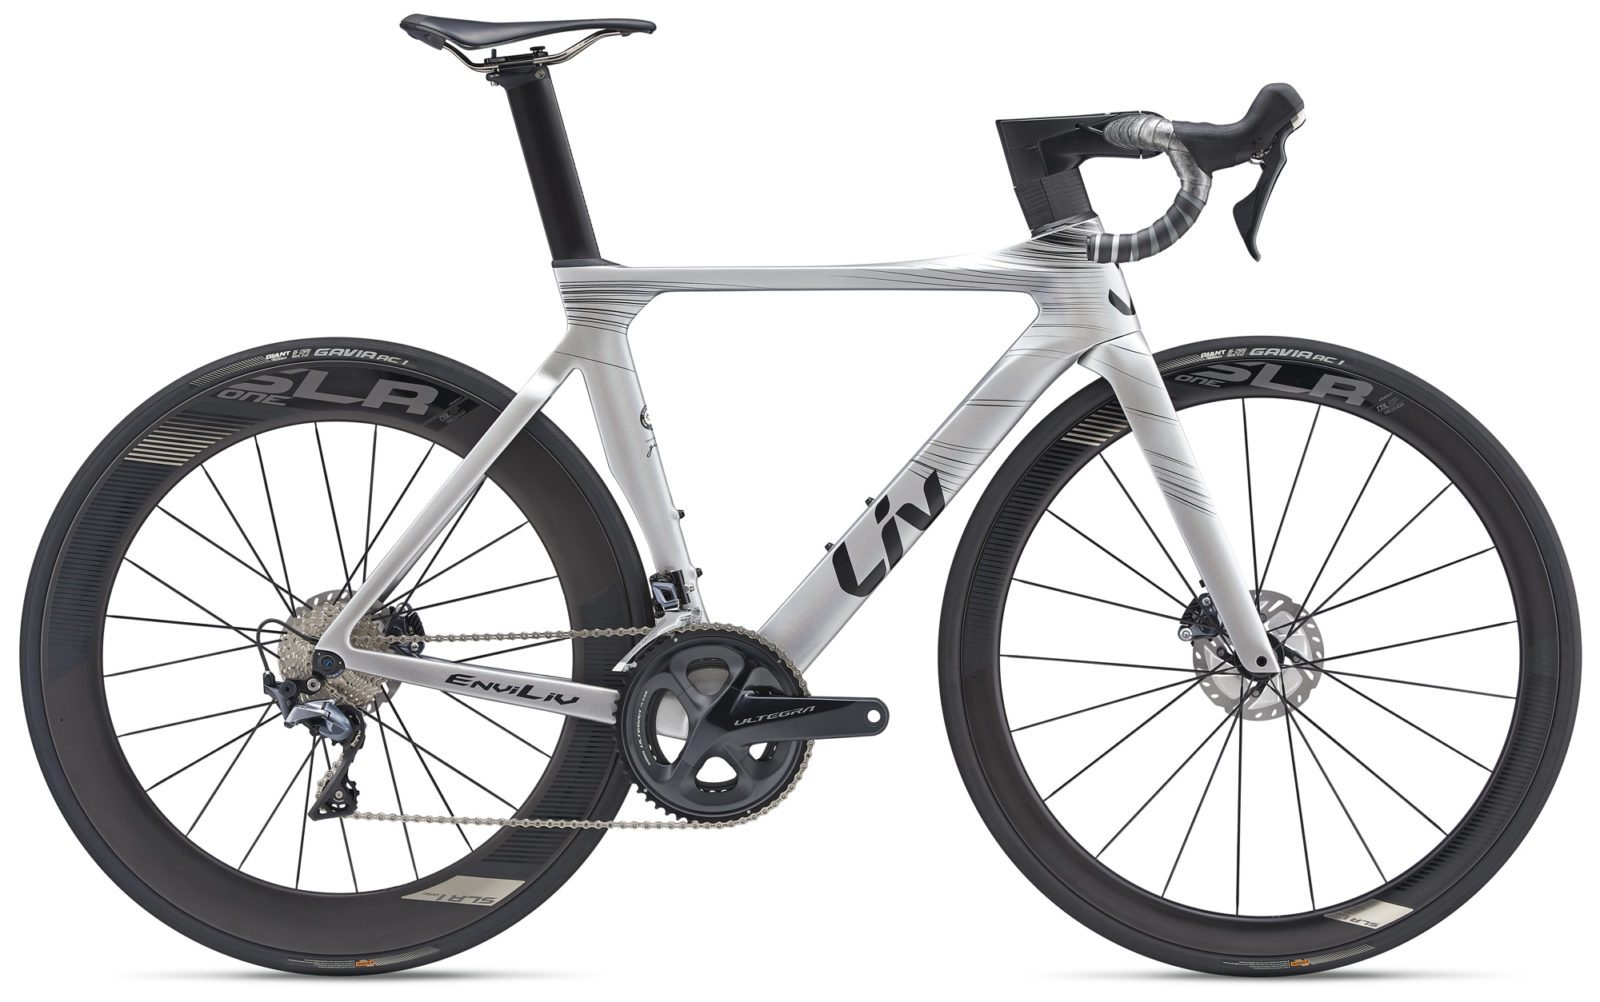 LIV Rennrad Enviliv Advanced Pro 1 Disc 2019